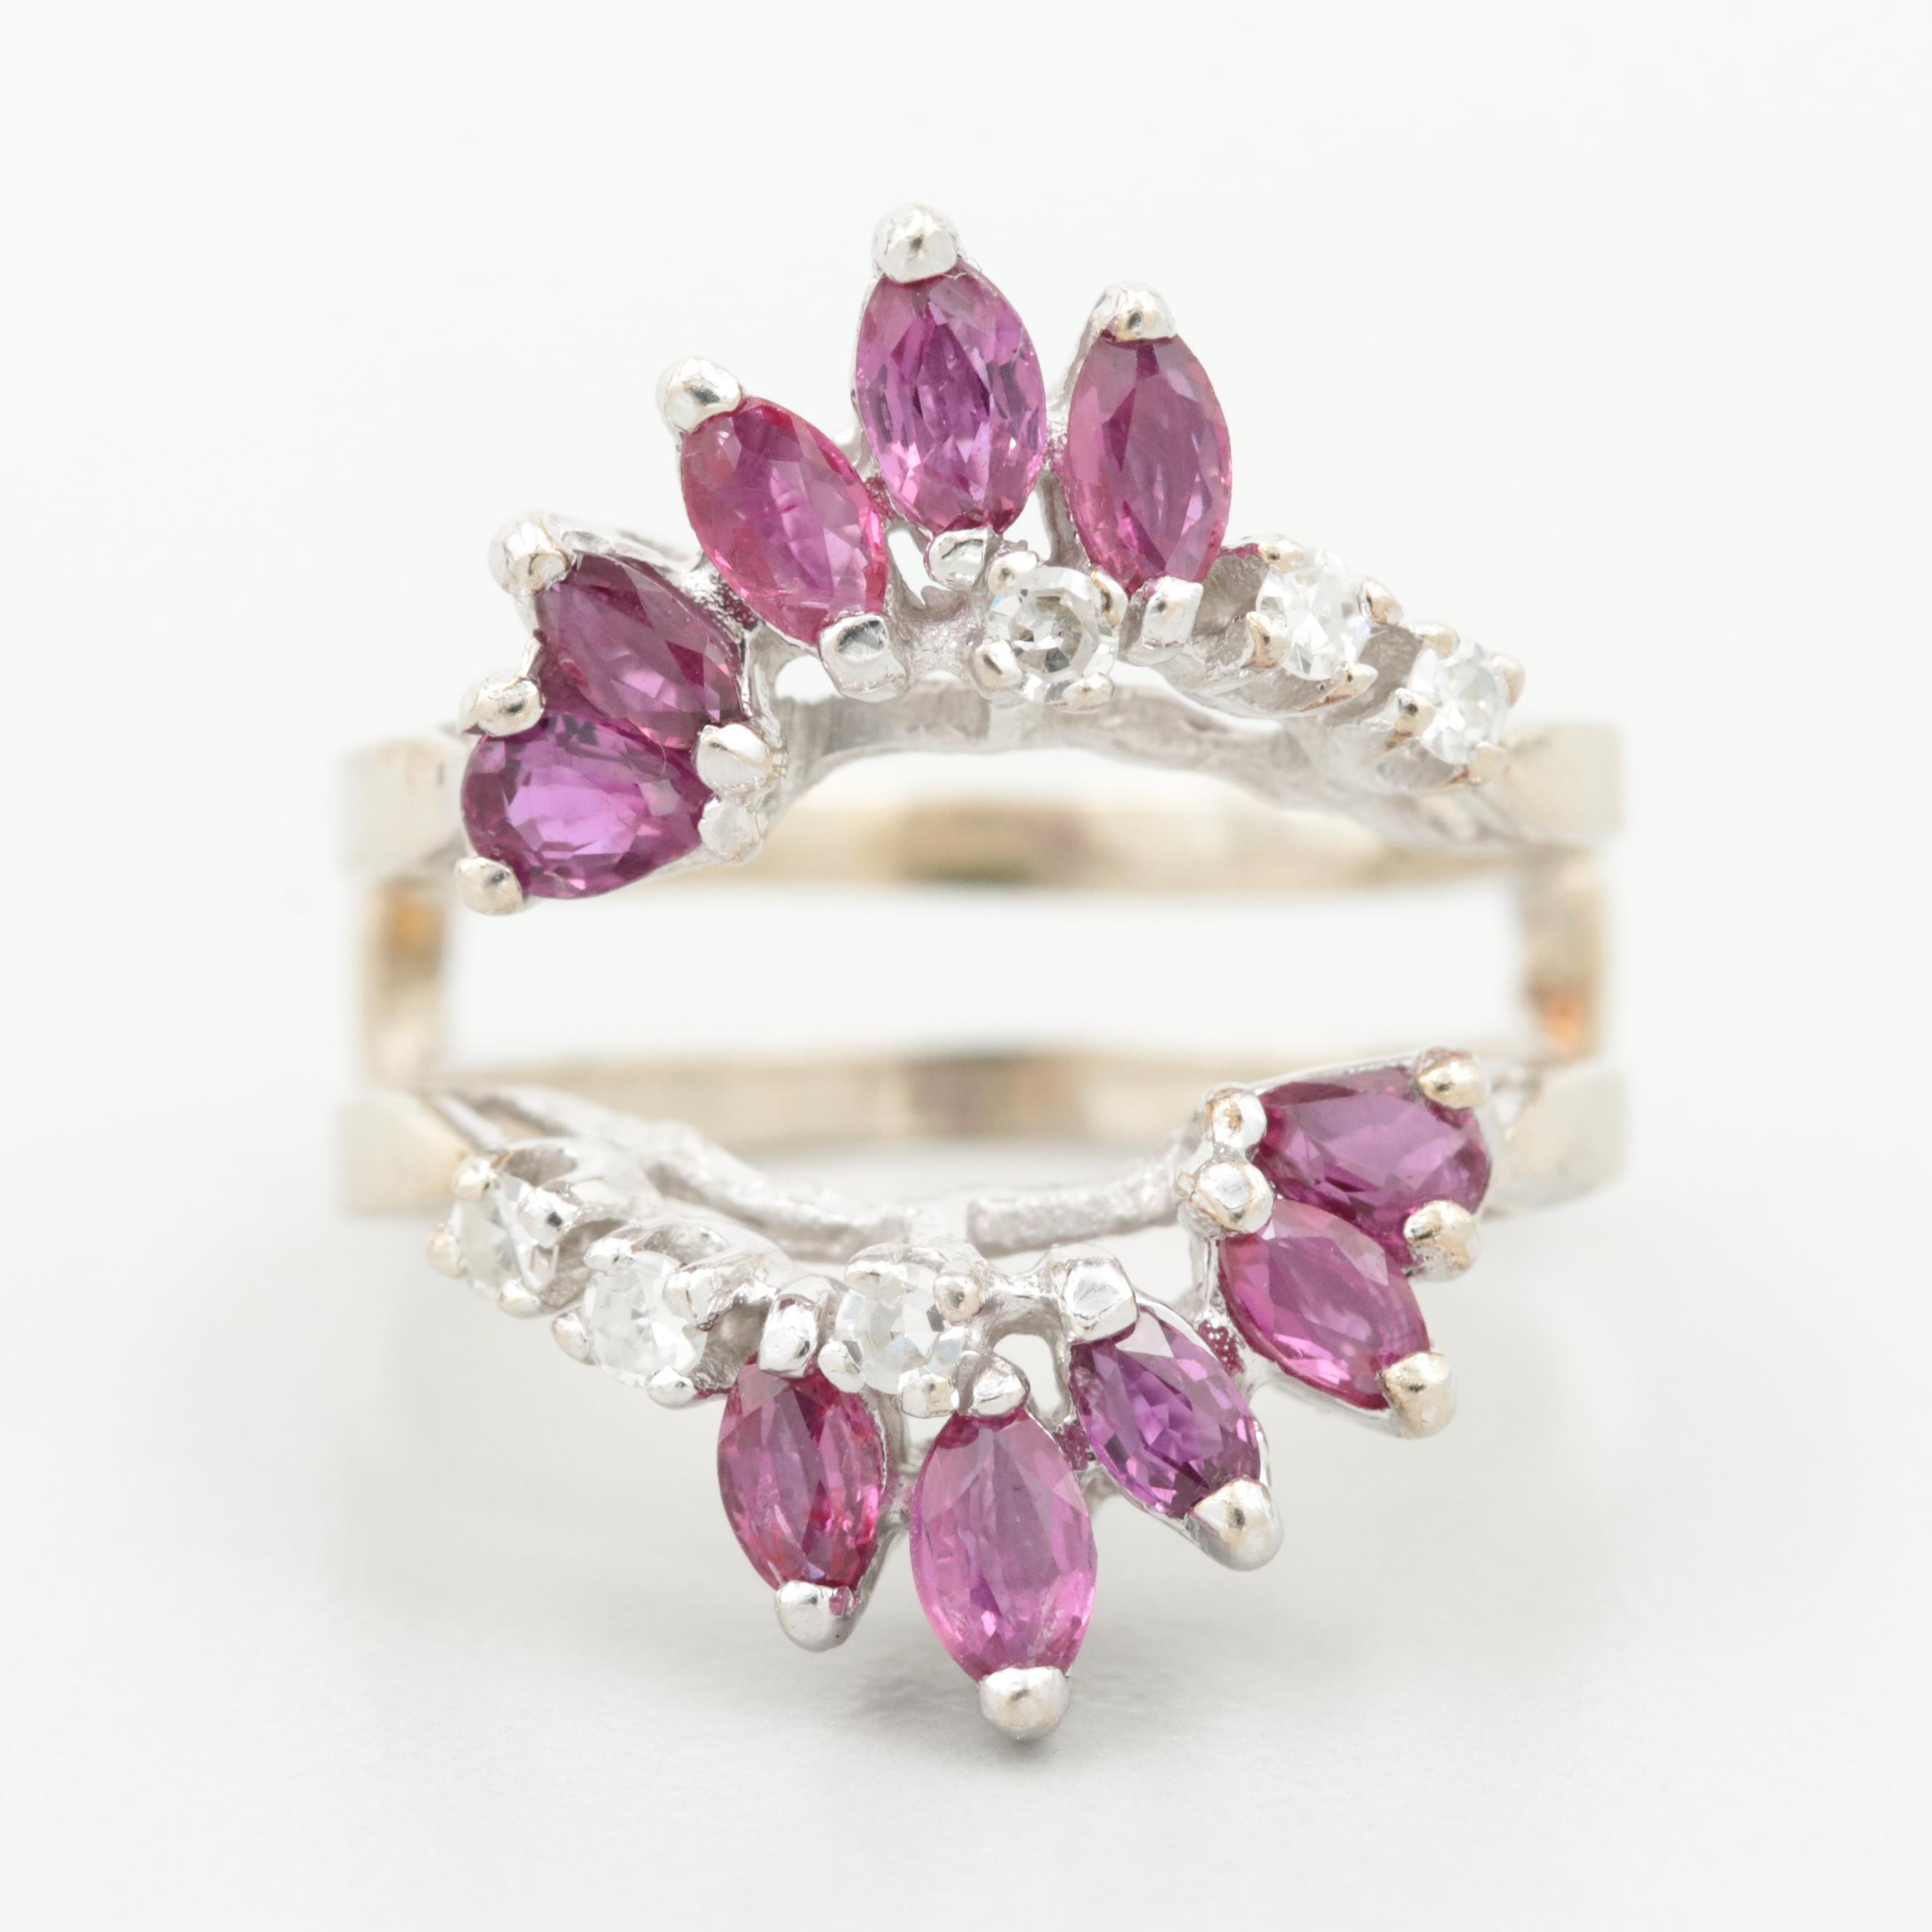 Vintage 14K White Gold Ruby and Diamond Enhancer Ring